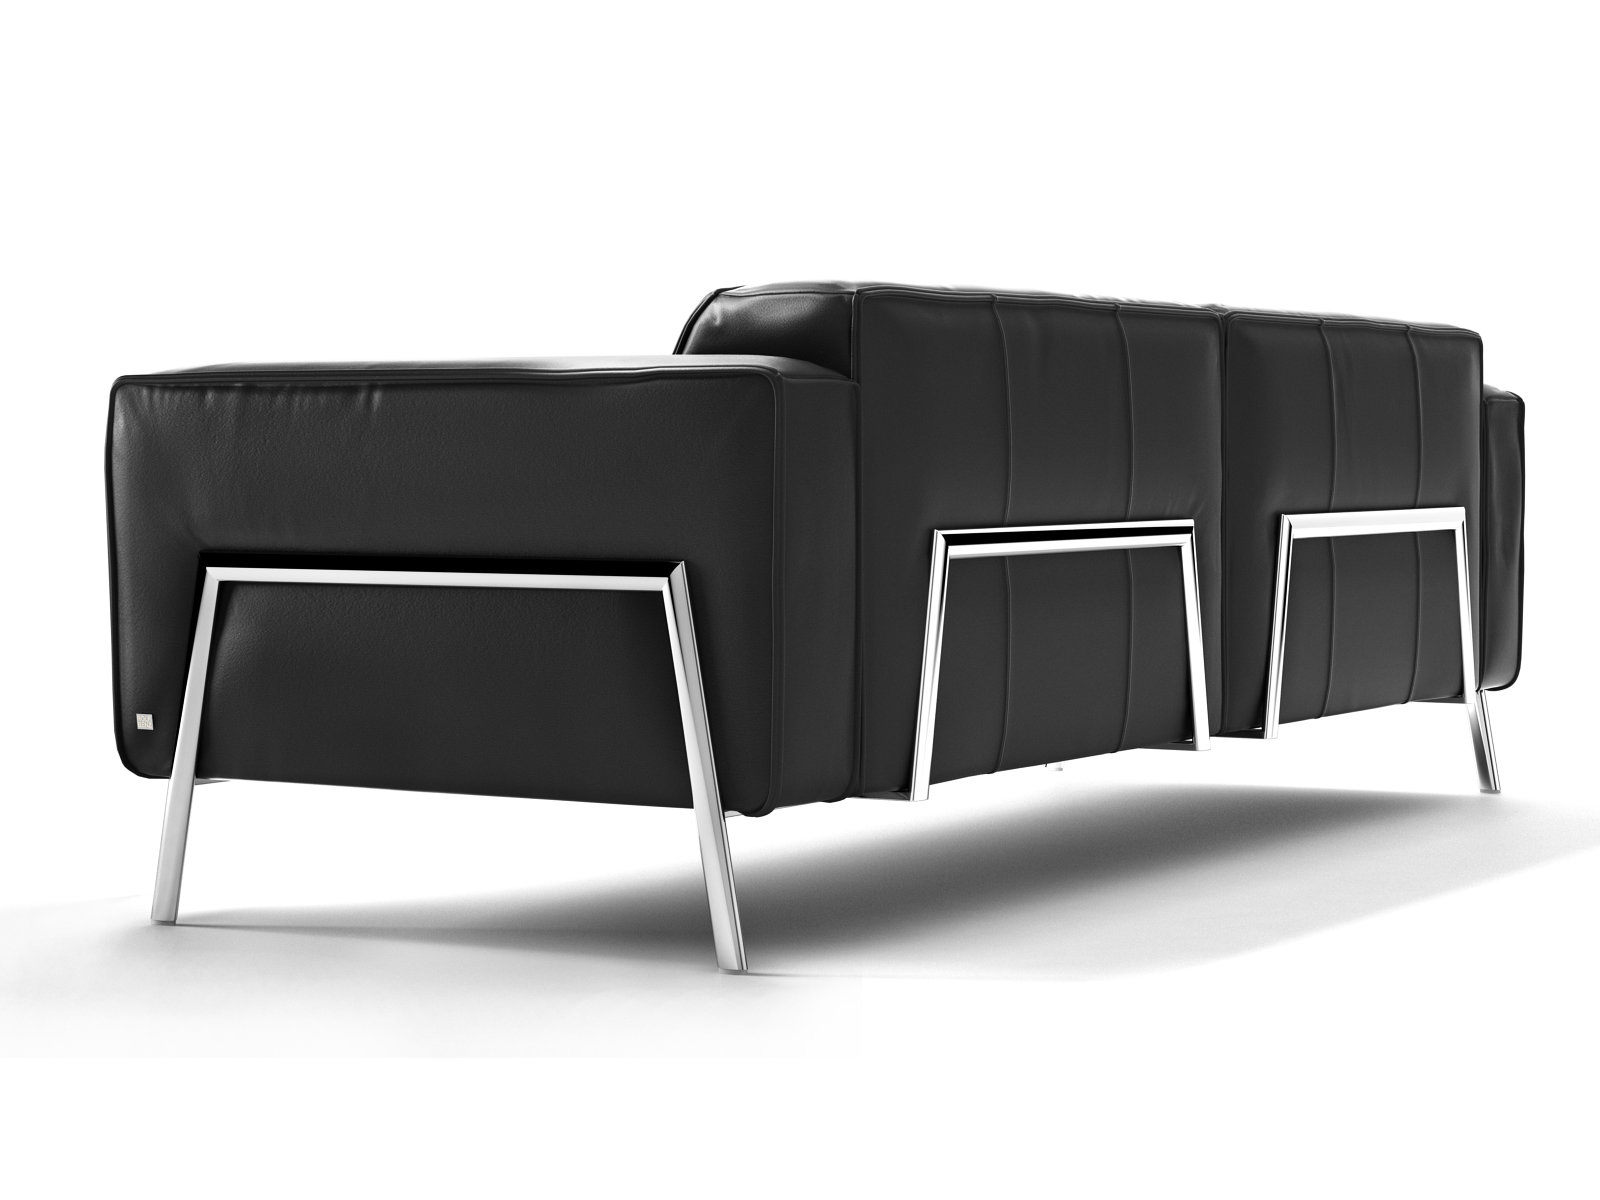 bacio sofa 227 3d model rolf benz. Black Bedroom Furniture Sets. Home Design Ideas